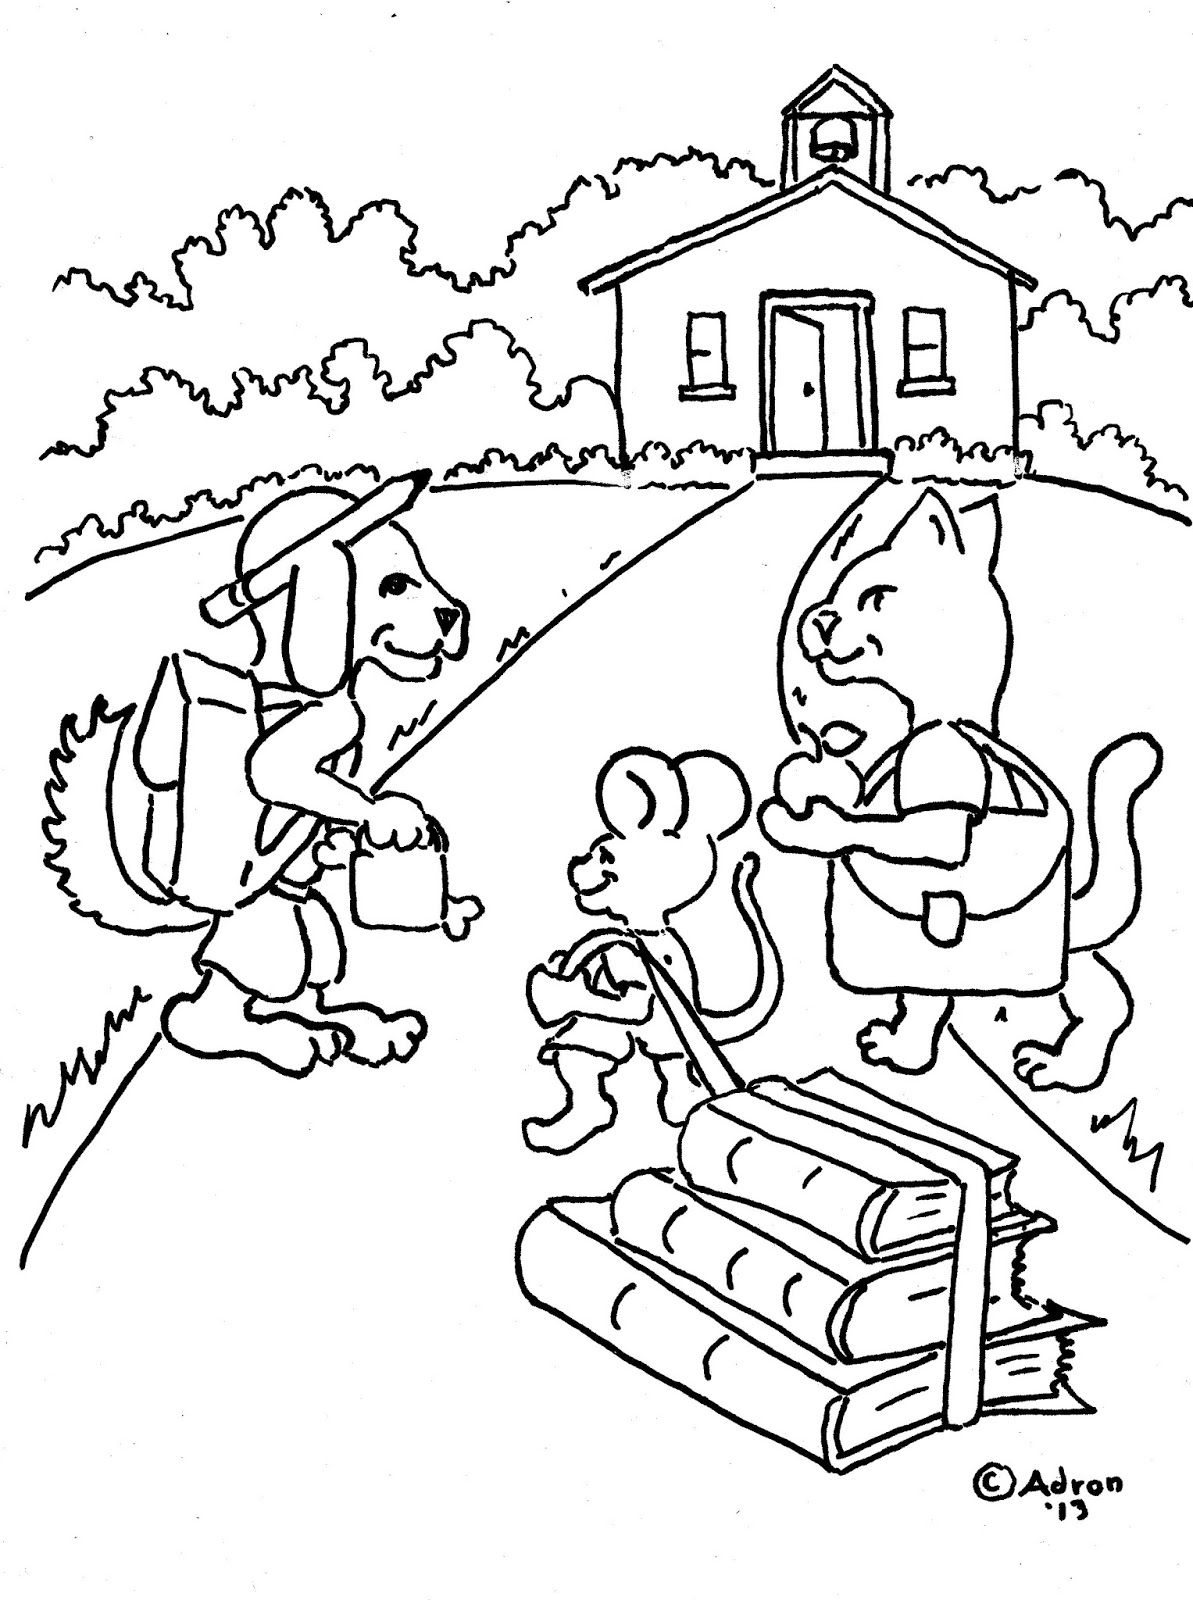 Coloring Pages For Kids By Mr Adron Animals Go To School